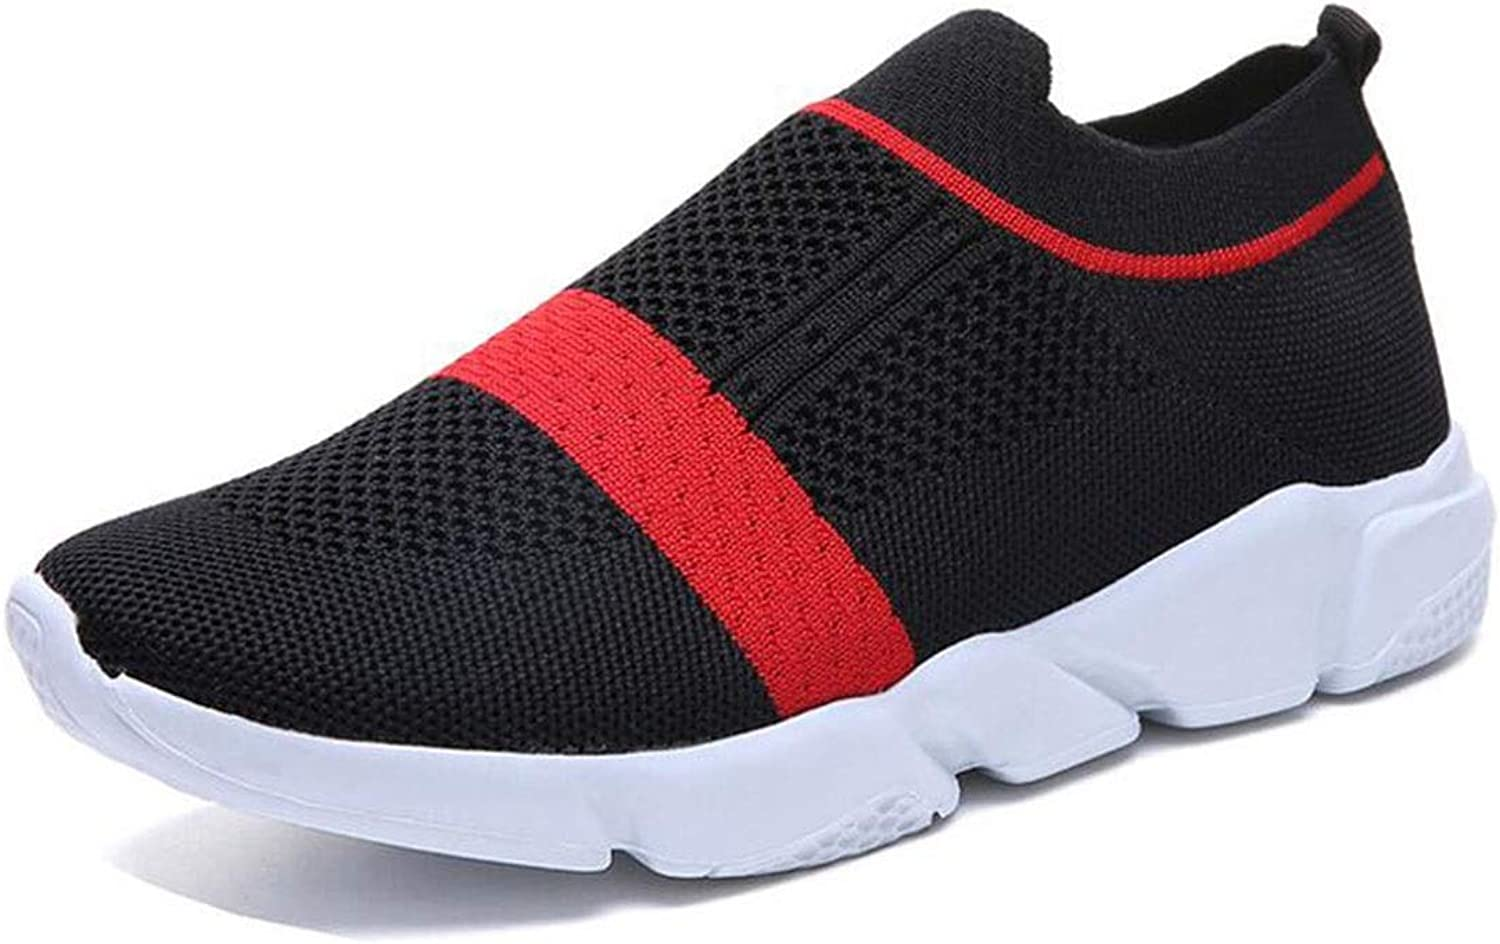 Women's Walking Tennis shoes Lightweight Athletic Casual Gym Slip on Sneakers Walking Casual Knit Workout Sneakers (color   Black, Size   36)